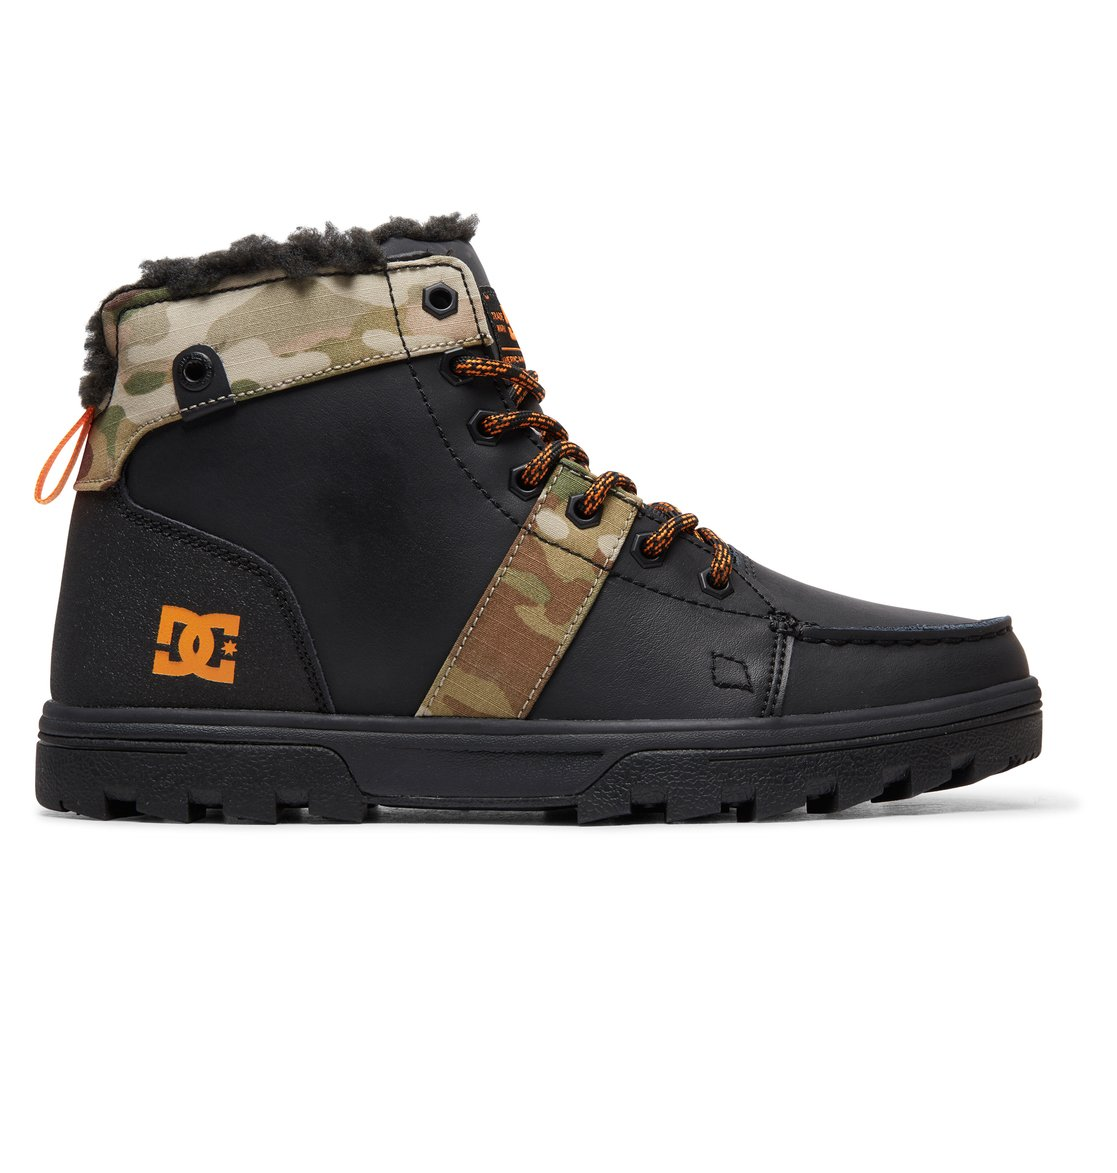 Woodland - Lace-Up Boots for Men 303241 | DC Shoes